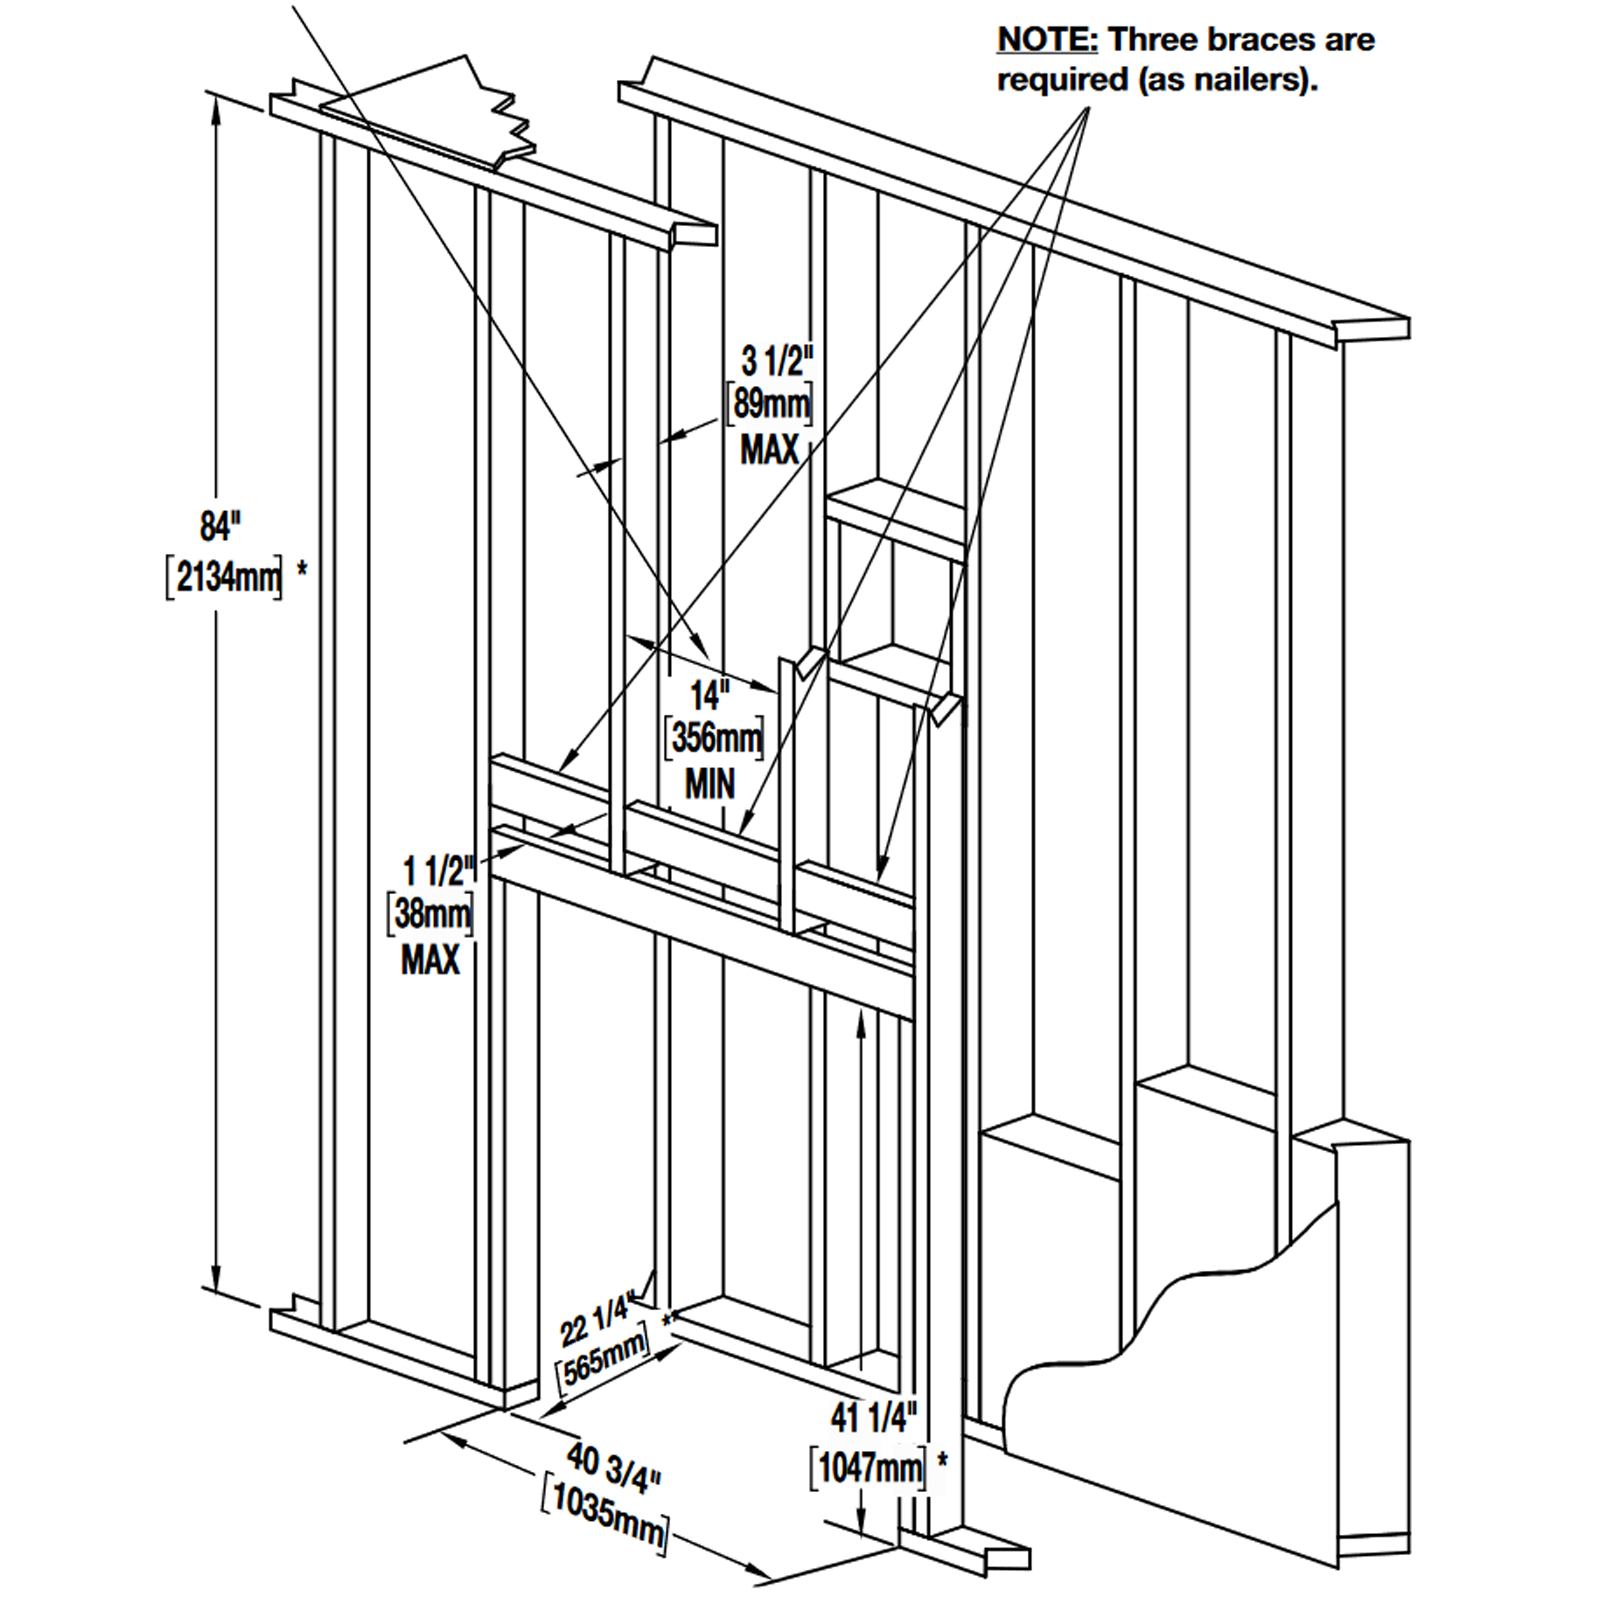 HDX40 Technical Drawing 2